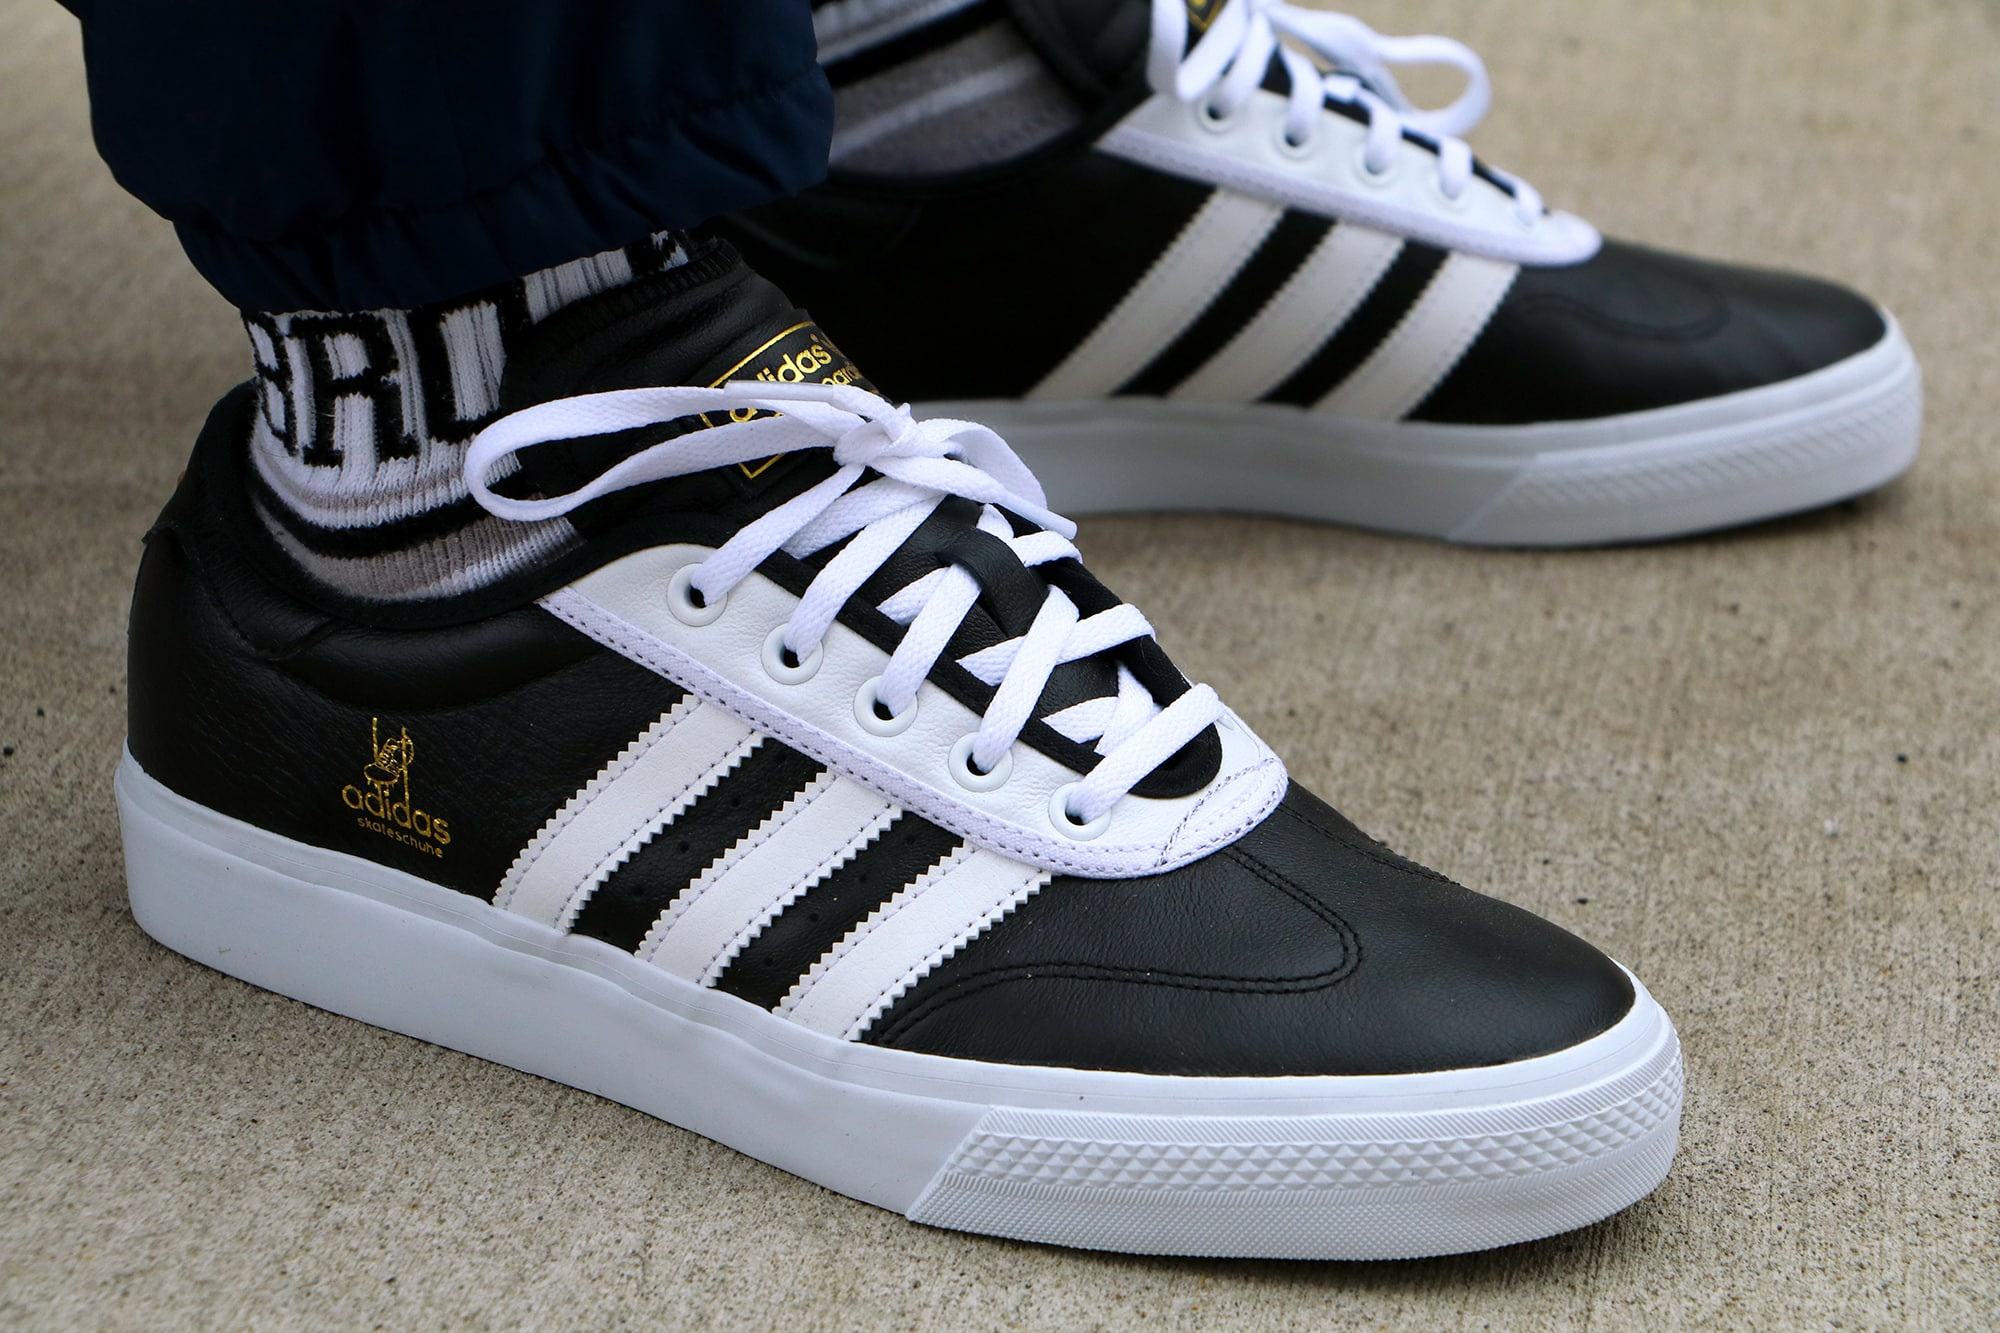 Adidas Skate Shoes Review